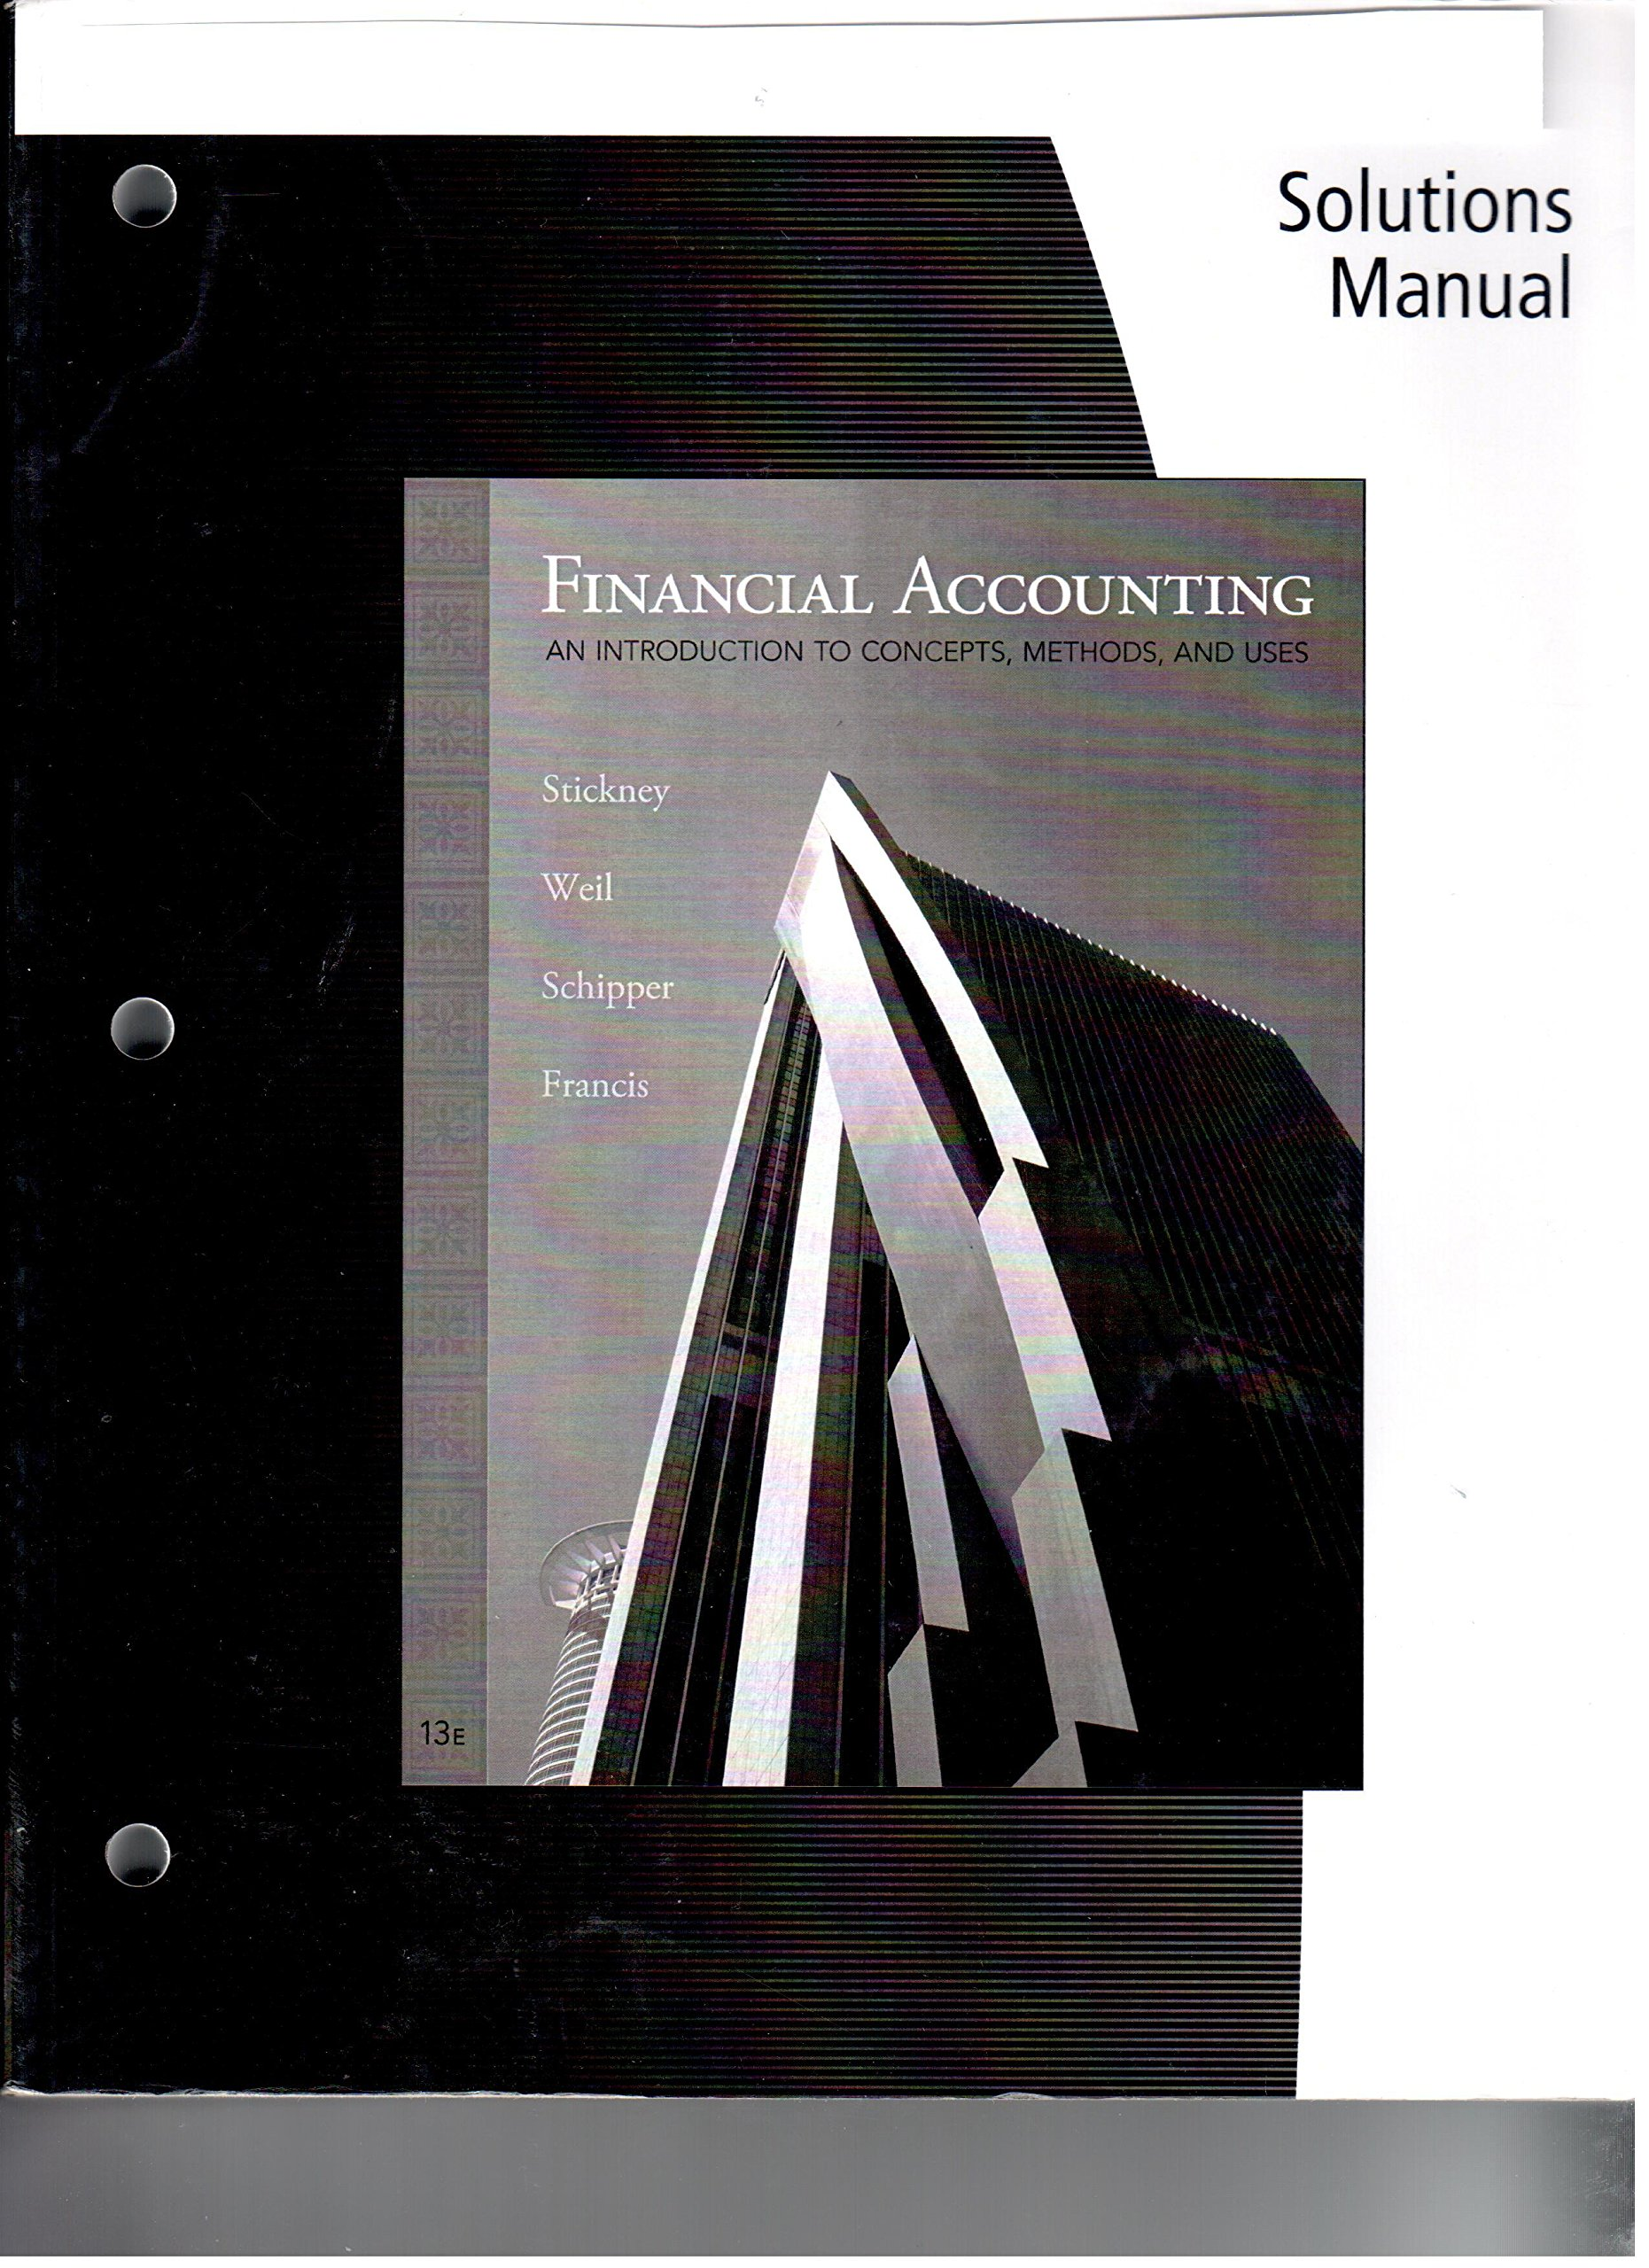 Solutions Manual for Stickney/Weil/Schipper/Francis' Financial Accounting:  An Introduction to Concepts, Methods and Uses: 9780324789010: Books -  Amazon.ca